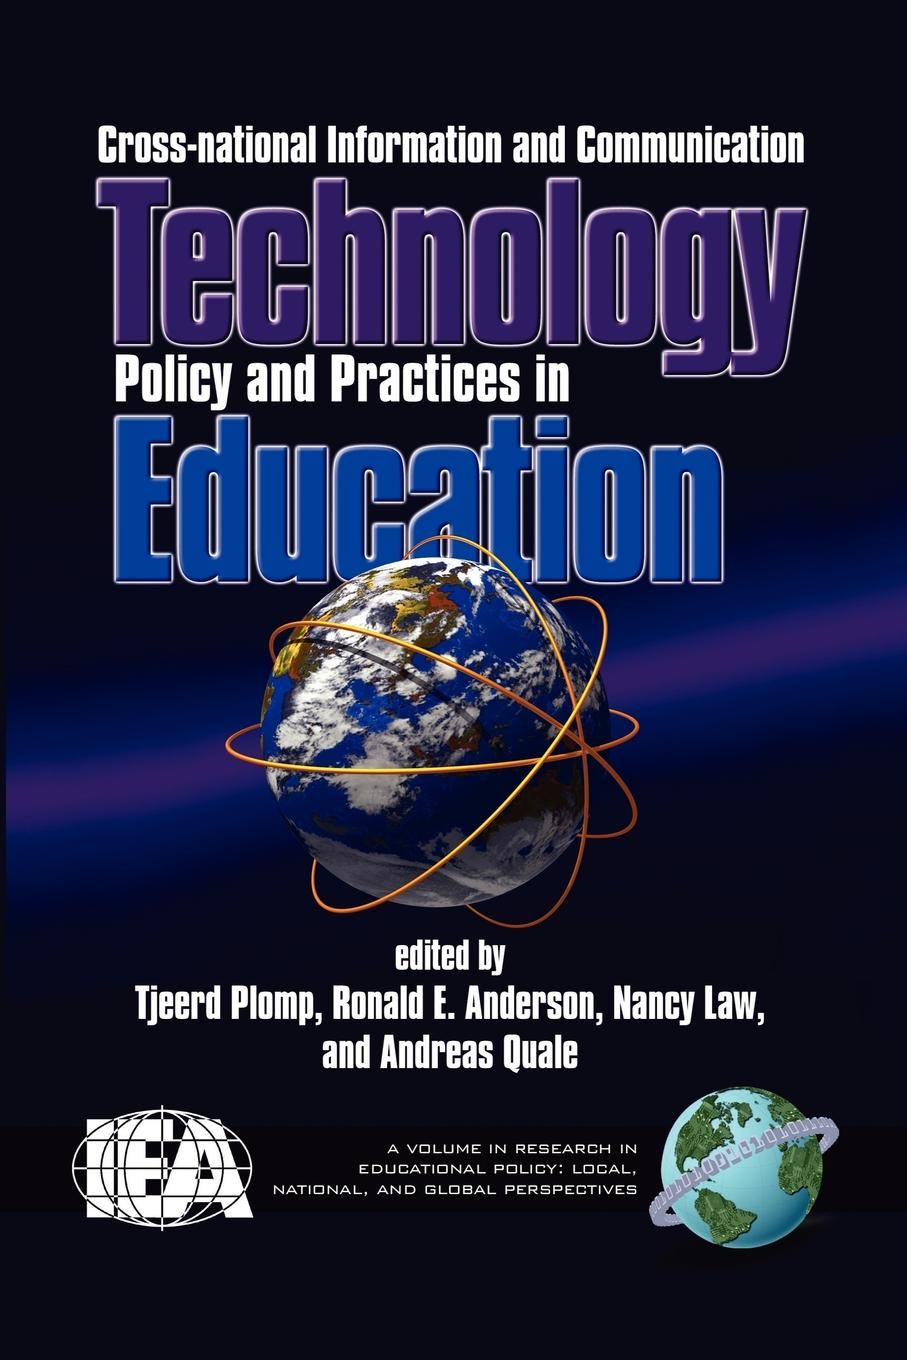 Cross-National Information and Communication Technology Polices and Practices in Education (PB) cross national information and communication technology policies and practices in education revised second edition pb